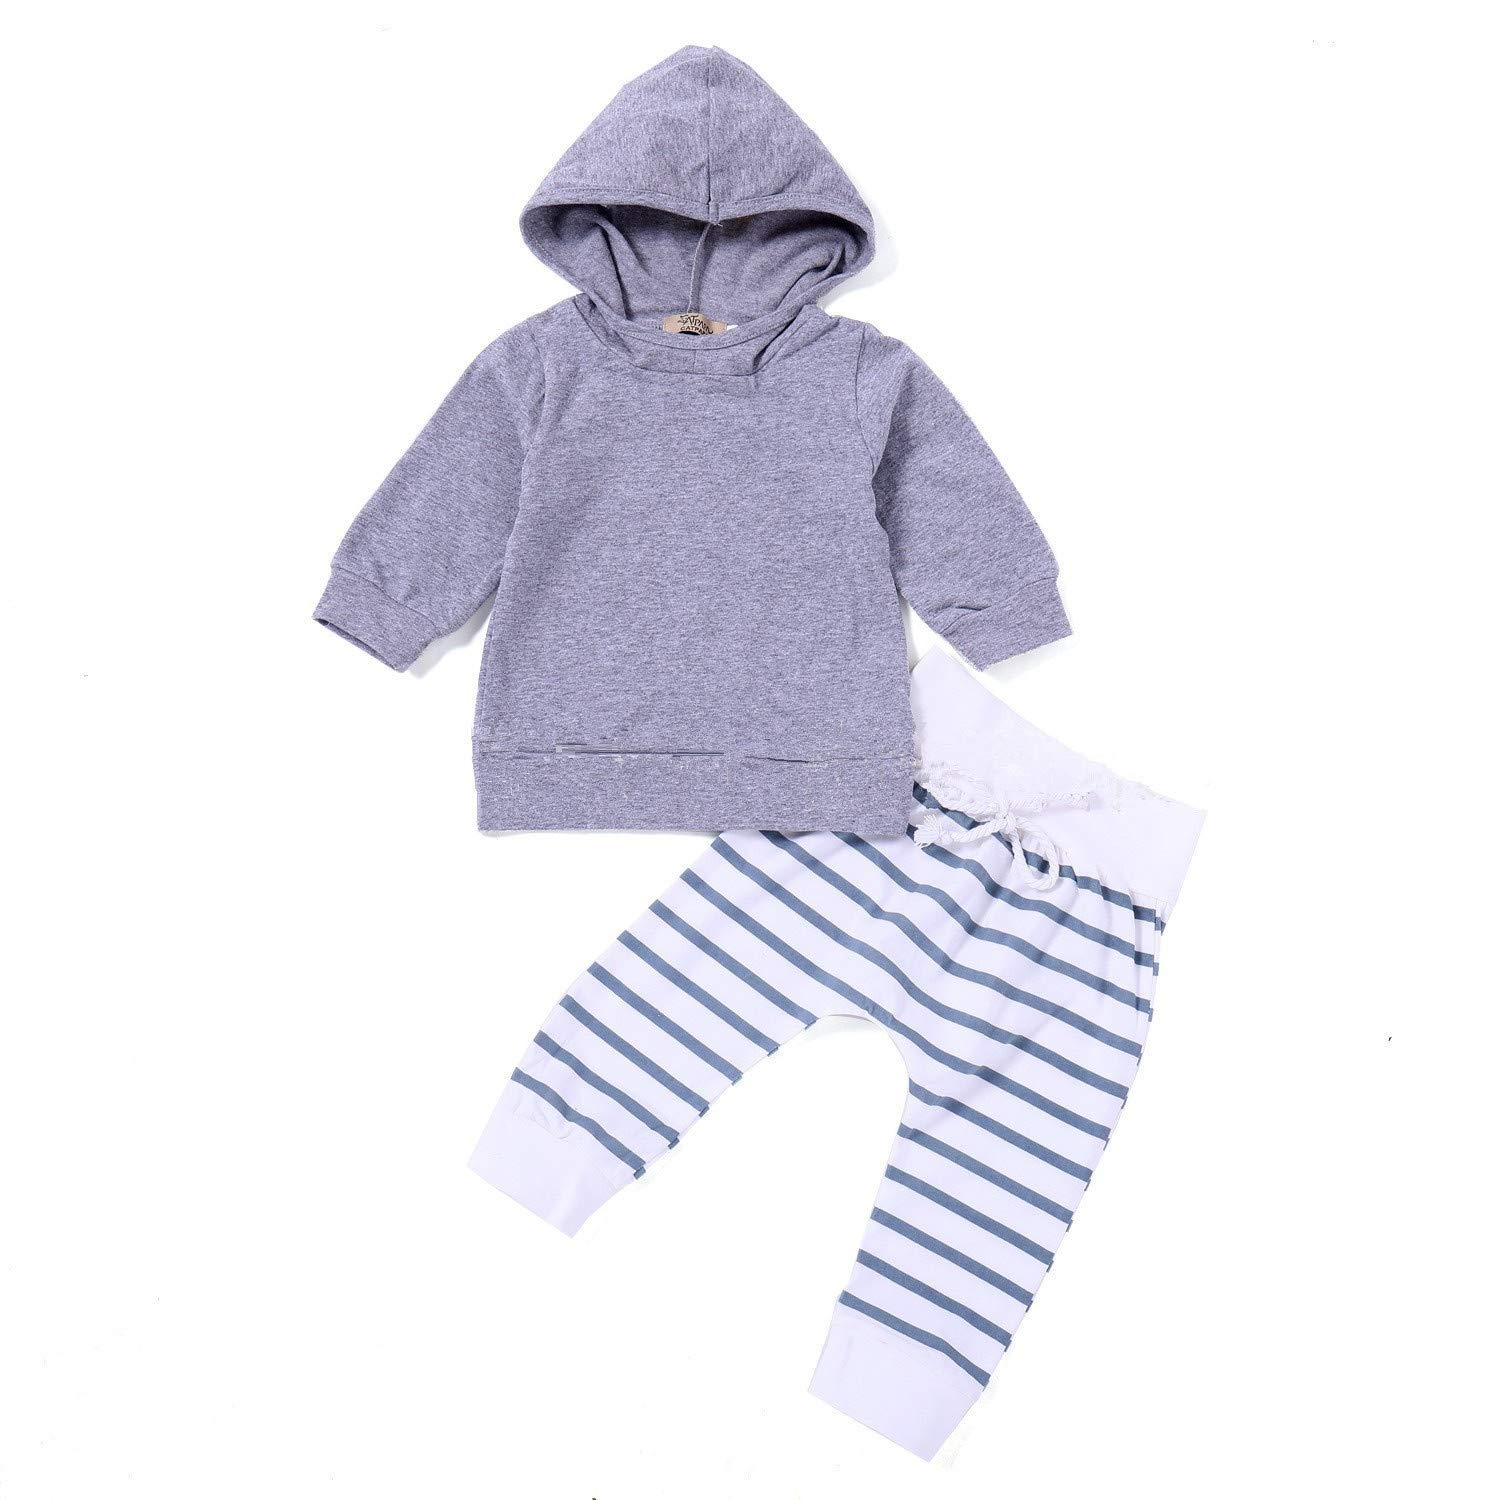 i-Auto Time Baby Boy Girl Clothes Long Sleeve Hoodie Tops Sweatsuit Pants Outfit Set